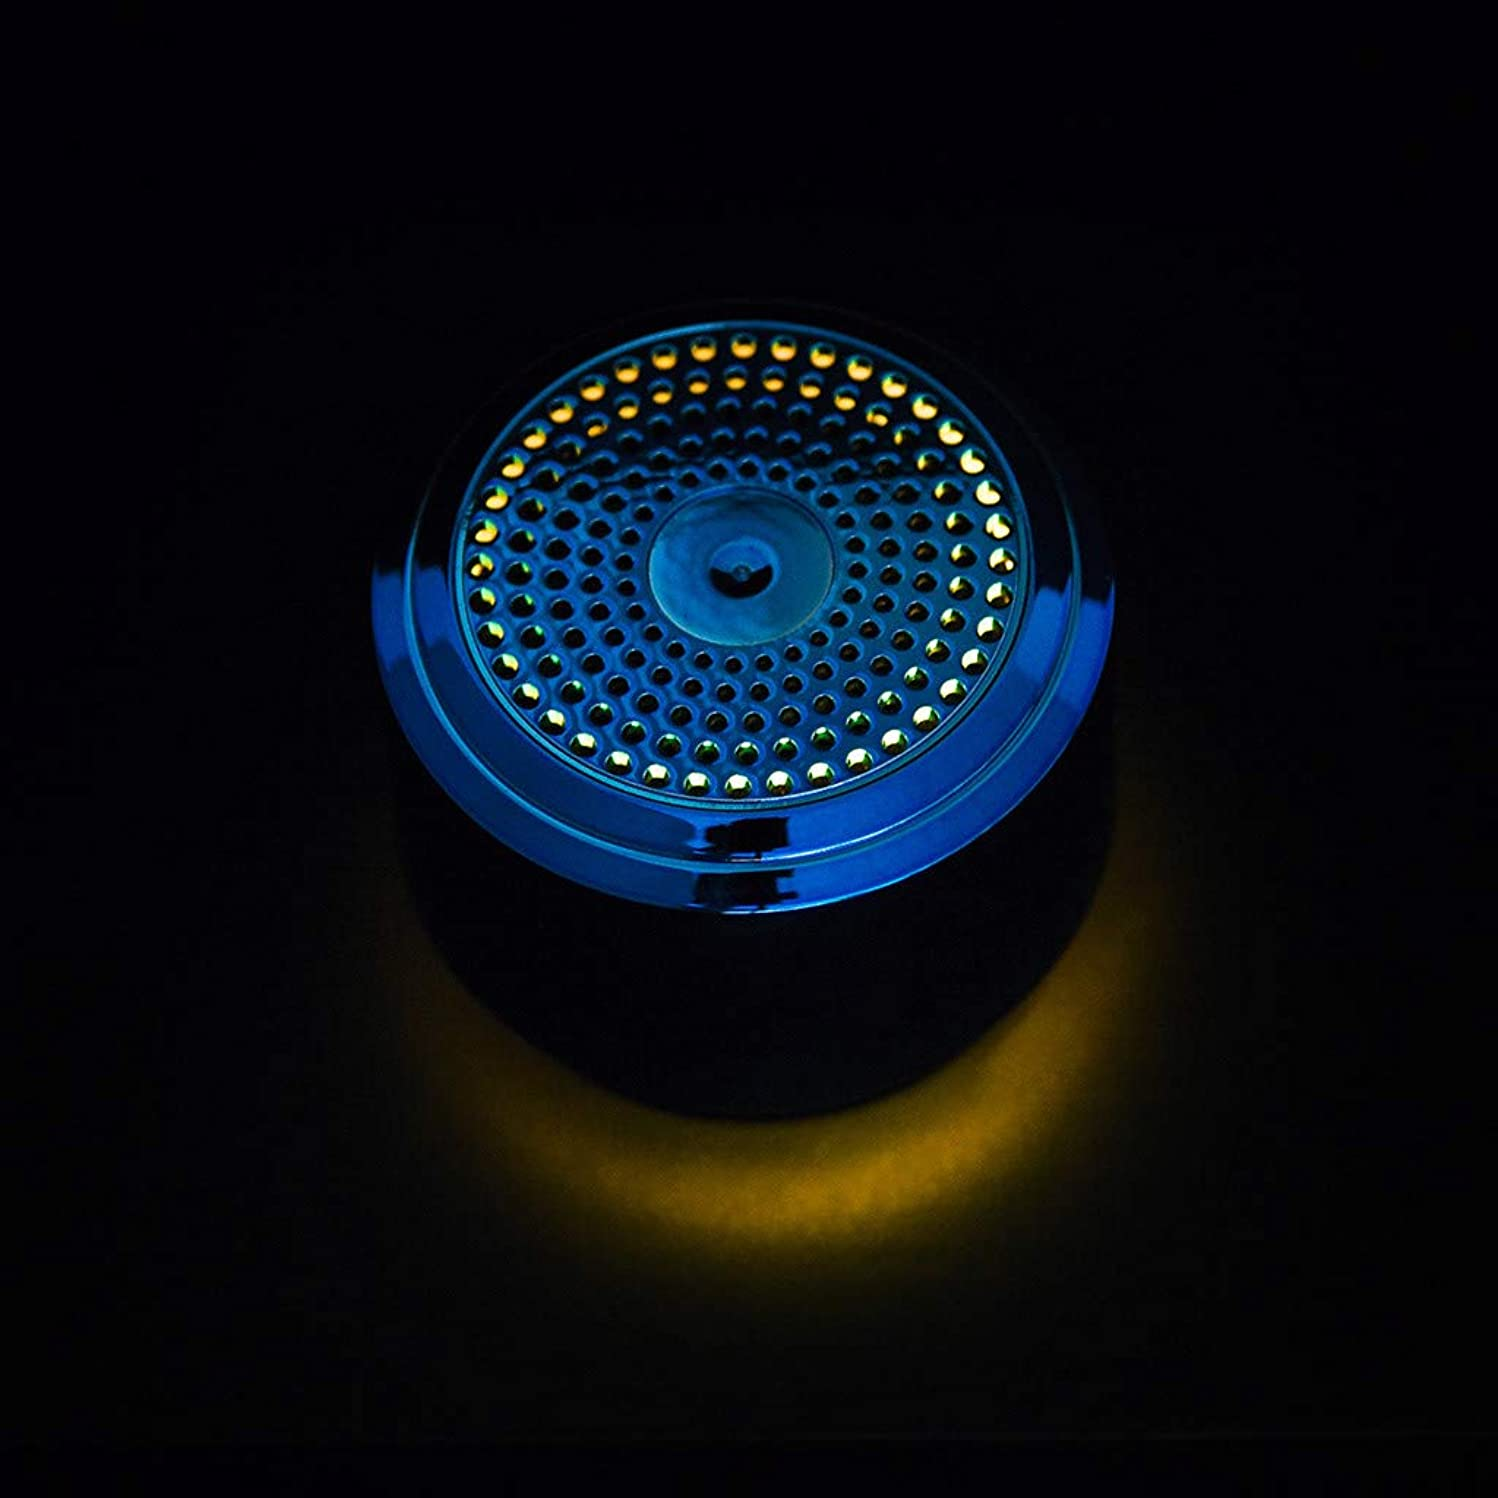 Wowpower Mini Bluetooth Speaker with Ambient Light Mini Bluetooth Speaker USB Led Light Wireless Portable Music Box Subwoofer Small